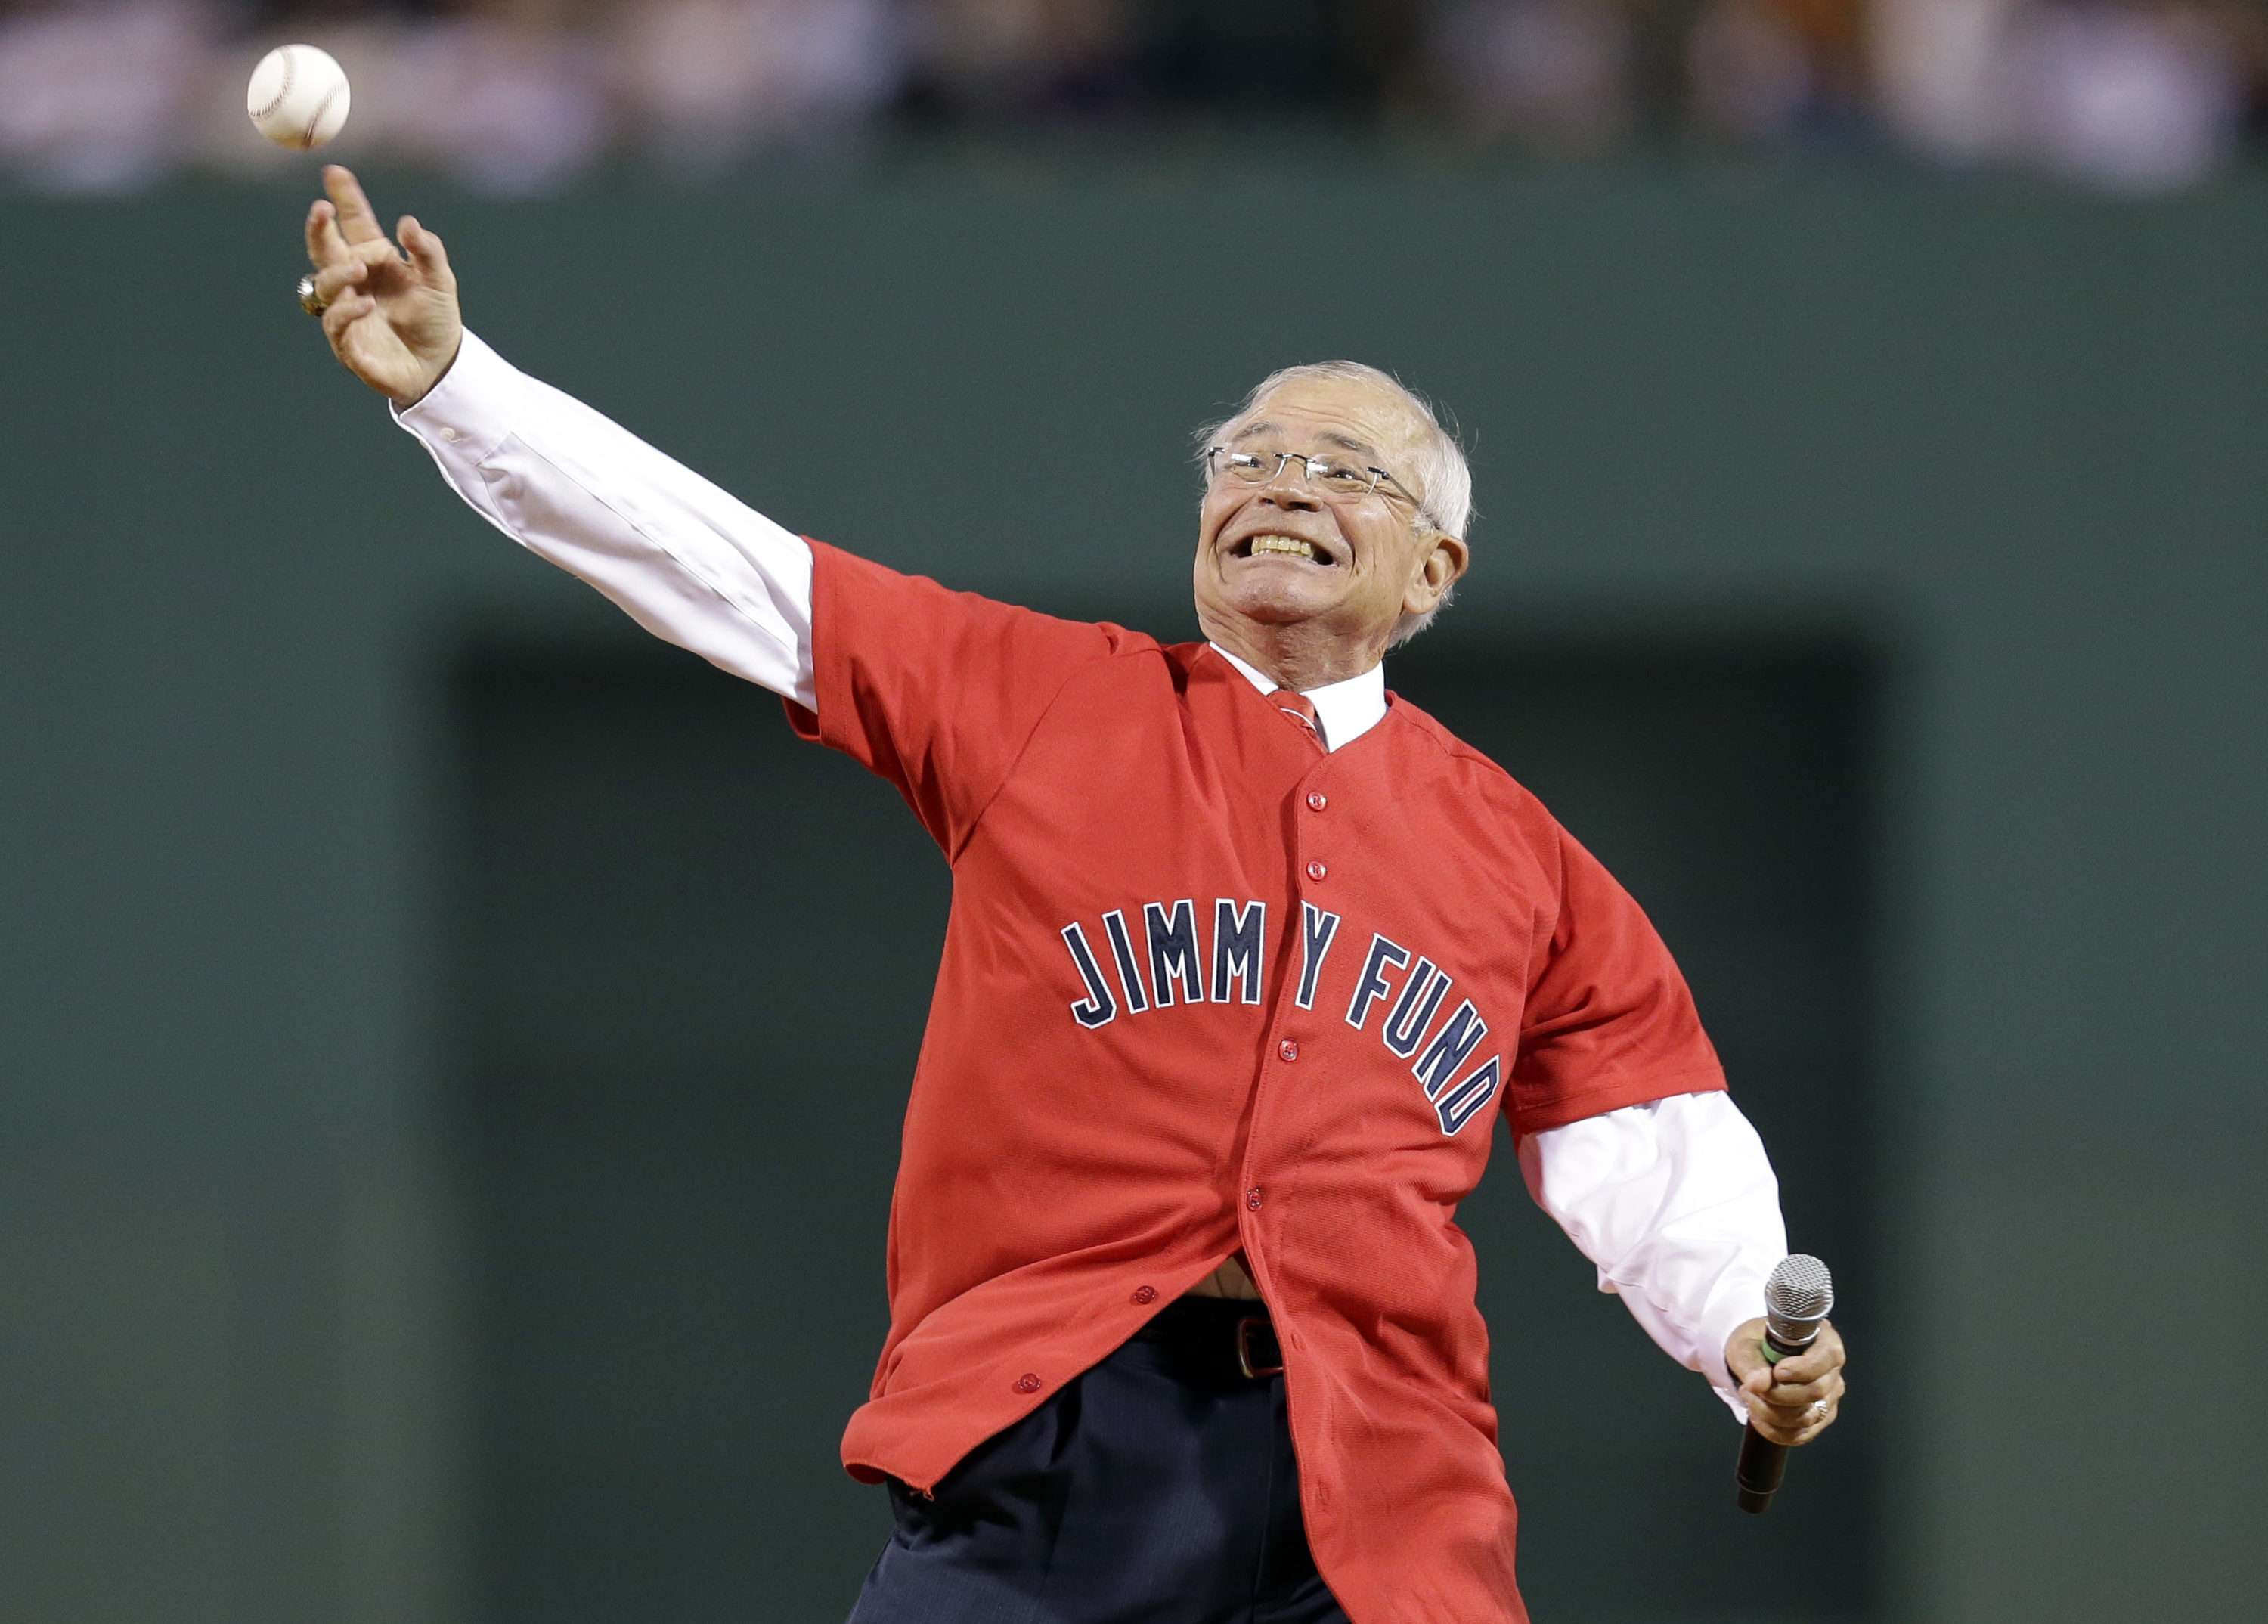 Veteran Boston Red Sox radio broadcaster Joe Castiglione throws a ceremonial first pitch prior to a baseball game against the New York Yankees at Fenway Park in Boston on Sept. 12, 2012. (Elise Amendola/AP)